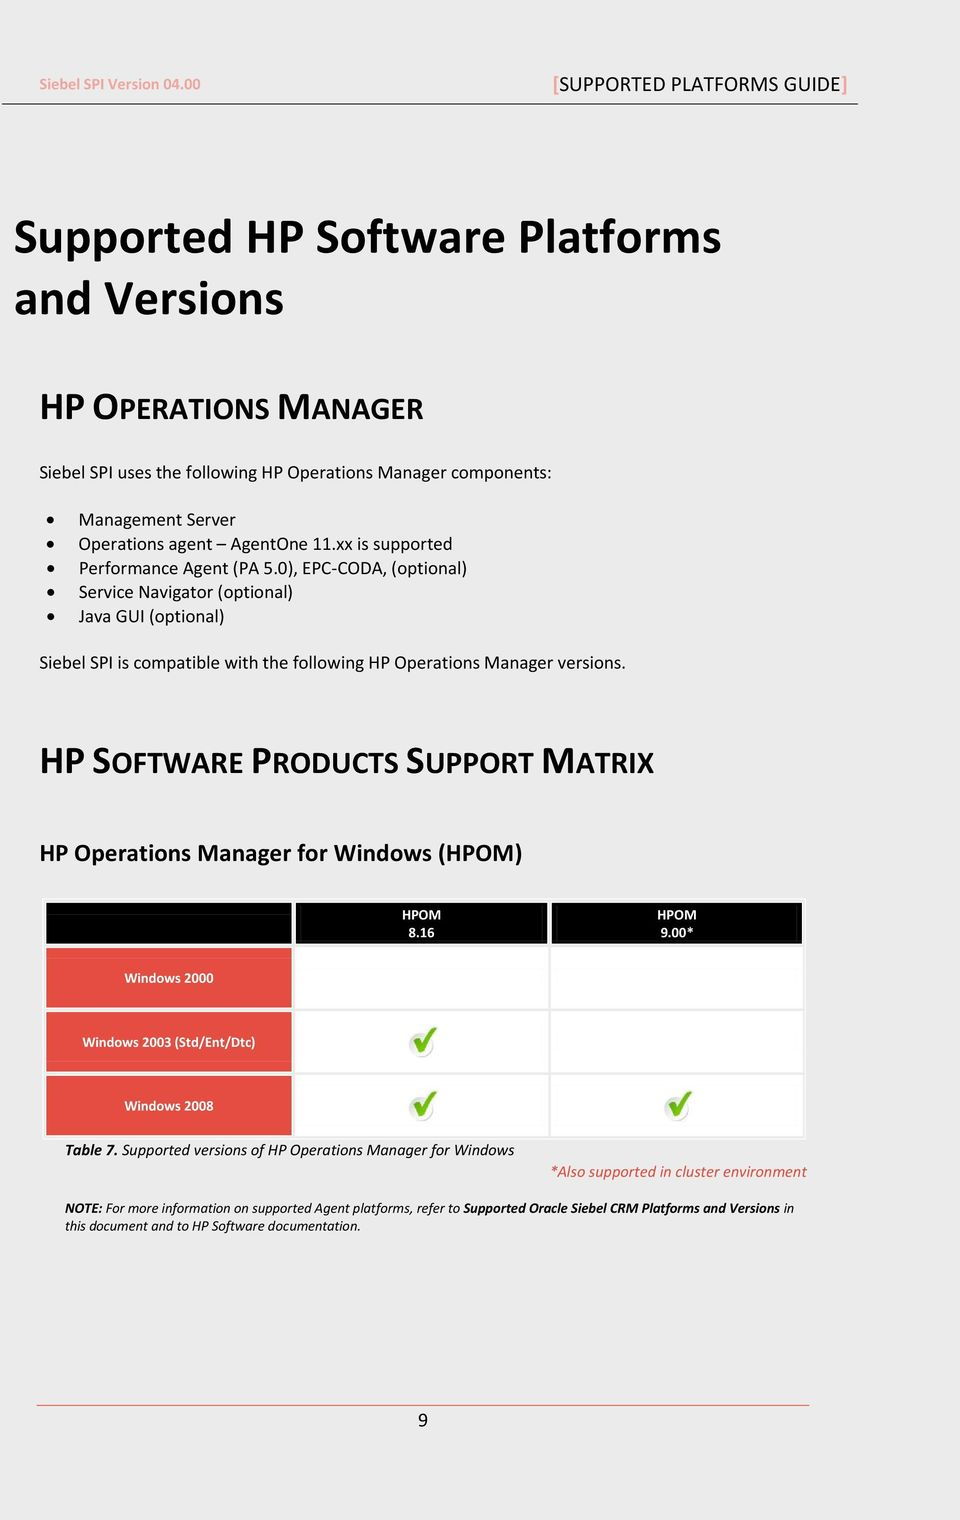 HP SOFTWARE PRODUCTS SUPPORT MATRIX HP Operations Manager for Windows (HPOM) HPOM 8.16 HPOM 9.00* Windows 2000 Windows 2003 (Std/Ent/Dtc) Windows 2008 Table 7.